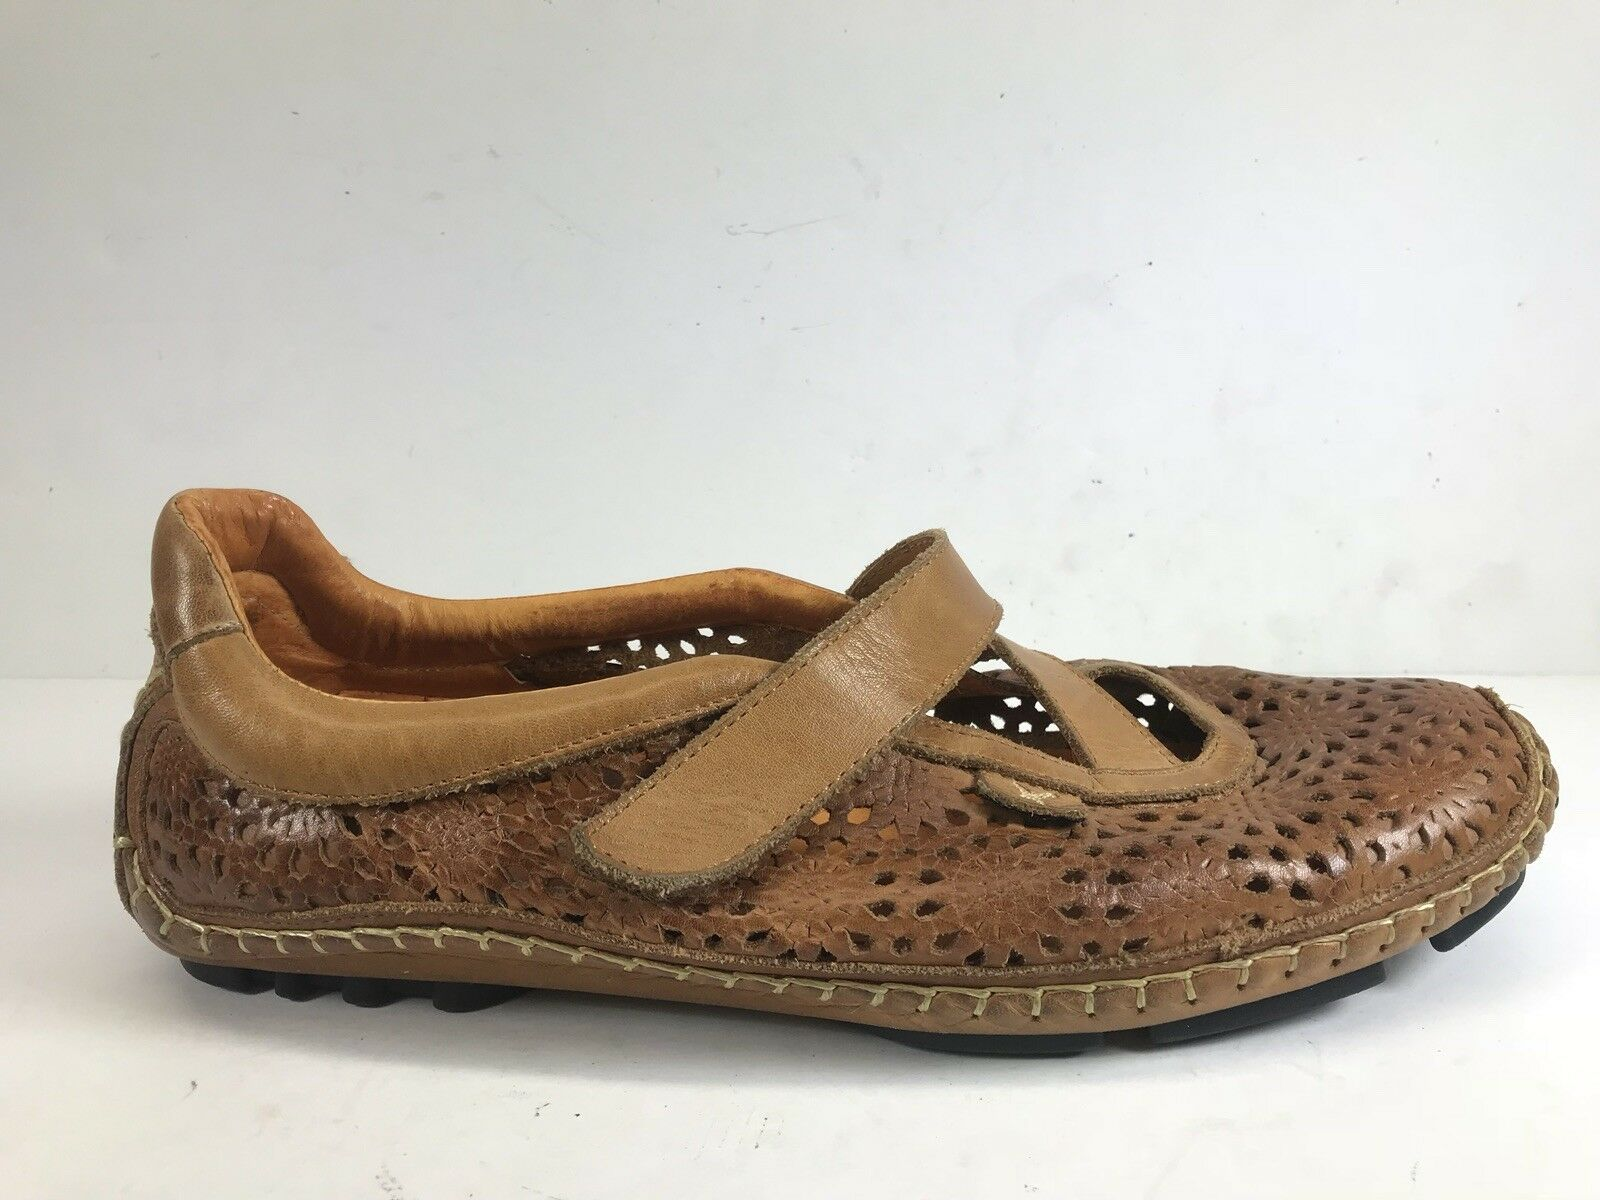 Pikolinos Brown Slip On Driving Loafer Moc Mary Jane Strap Leather Womens 38 7.5